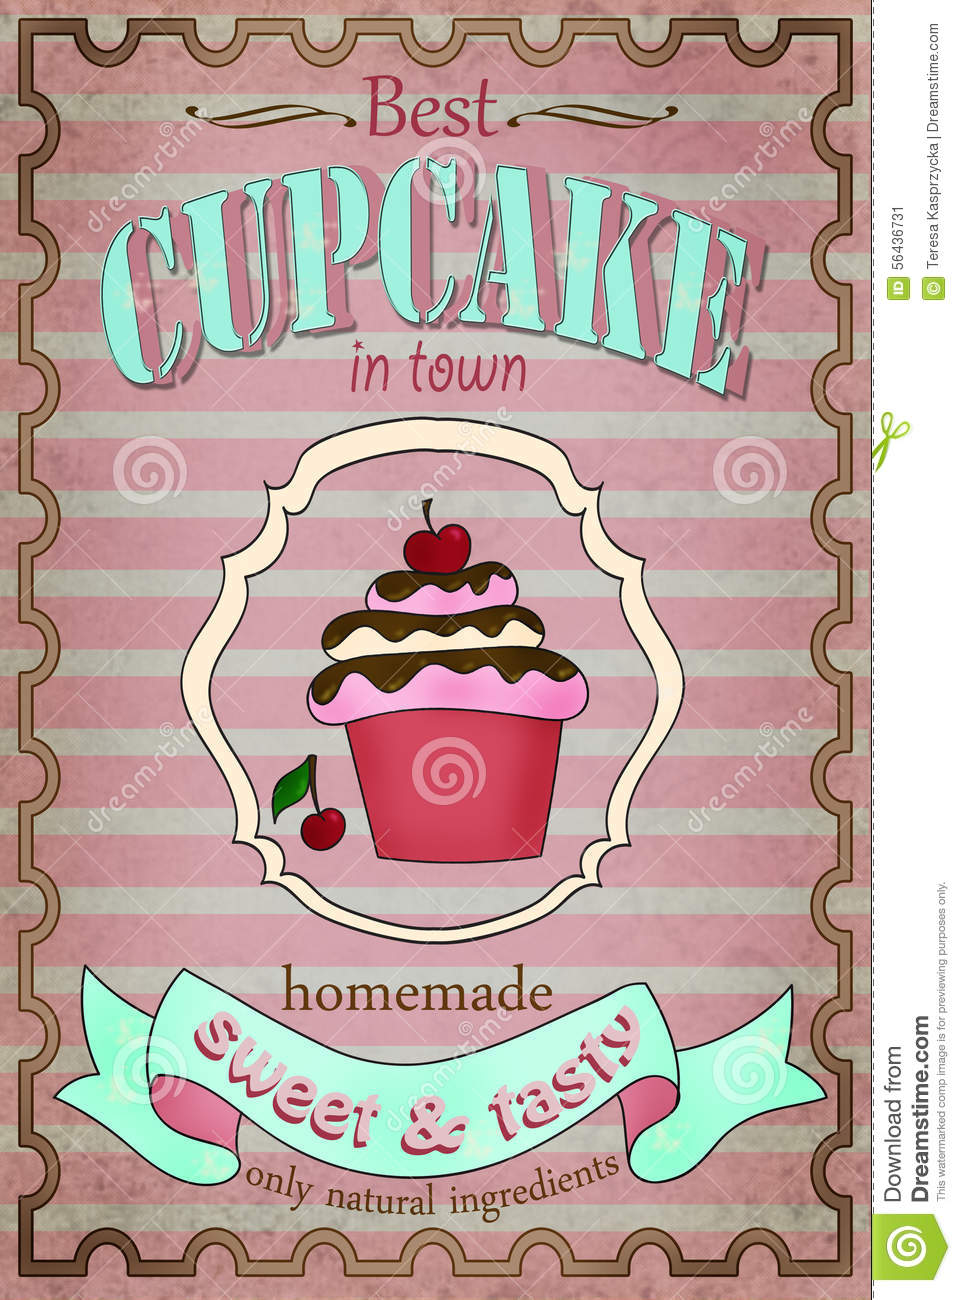 Vintage Cupcake Poster Design Stock Illustration ...